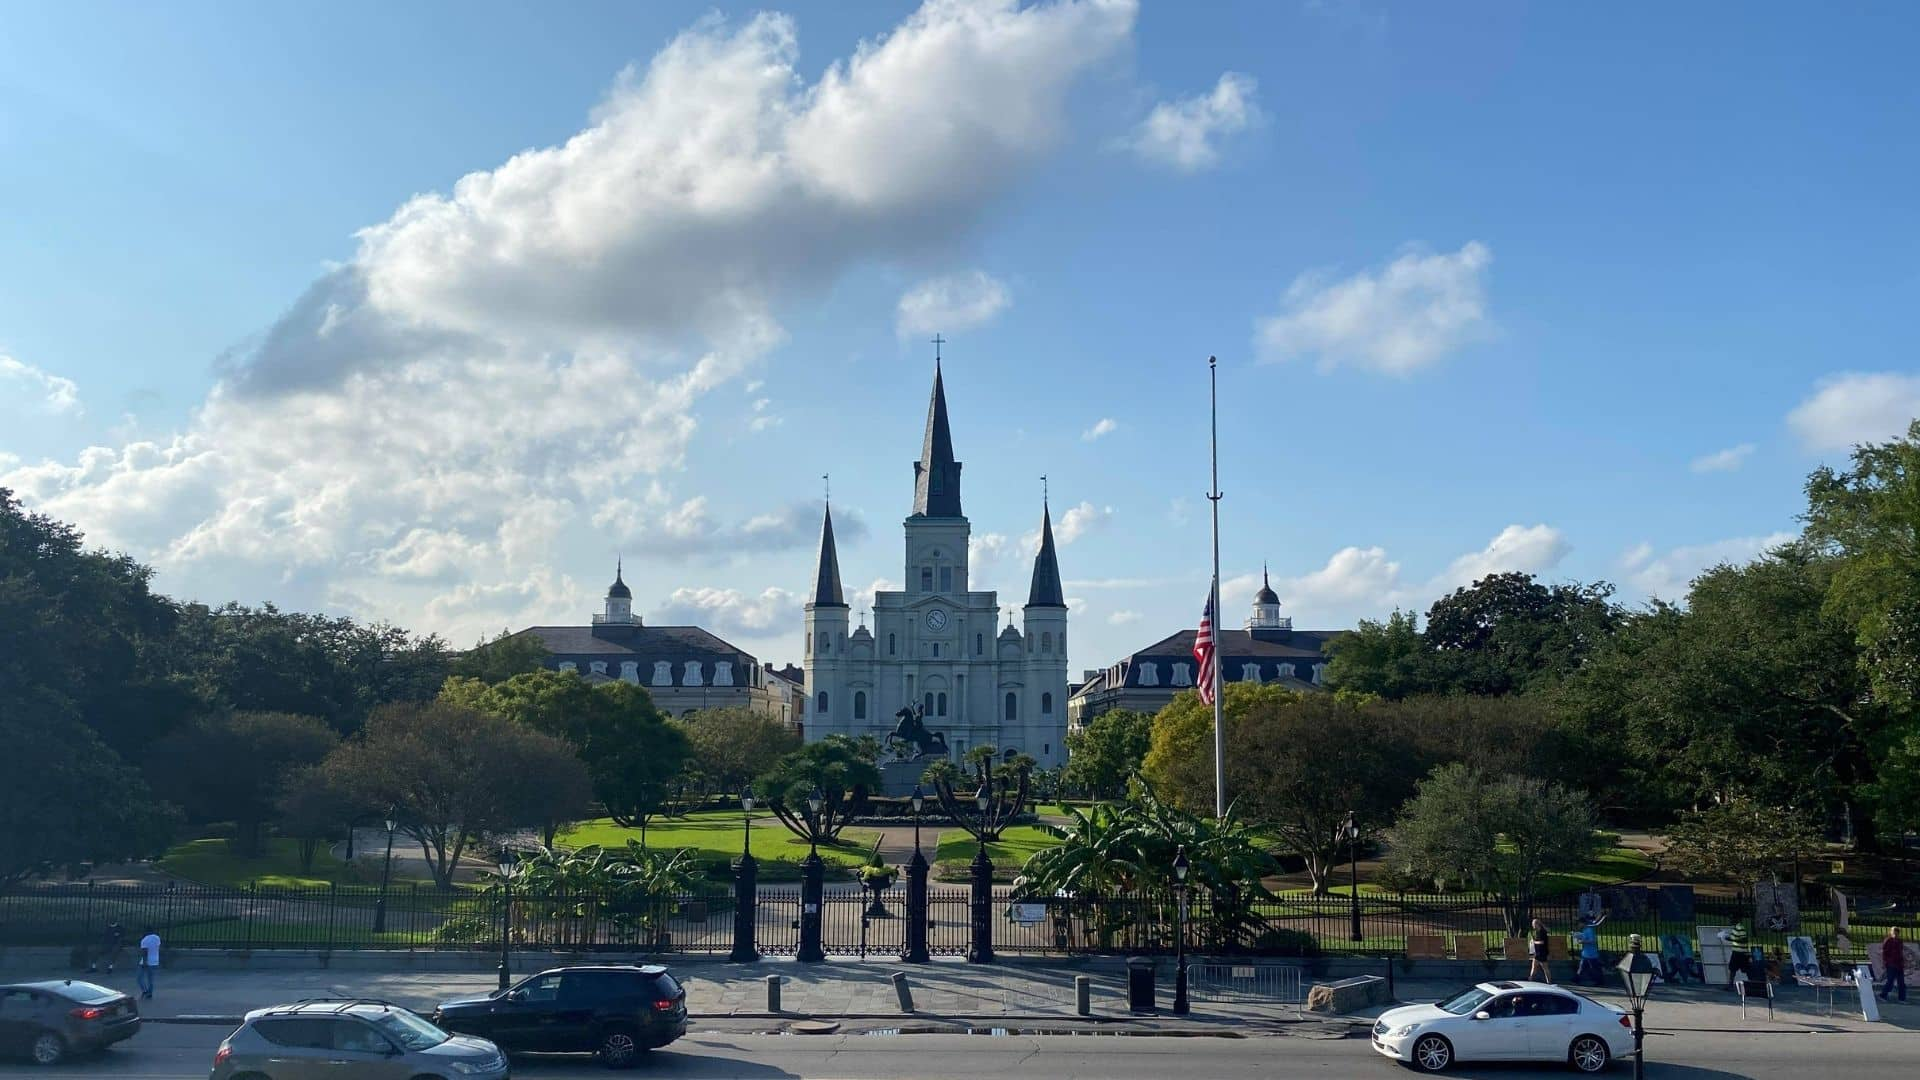 New Orleans Jackson Square and St. Louis Cathedral - Pint-Sized NOLA